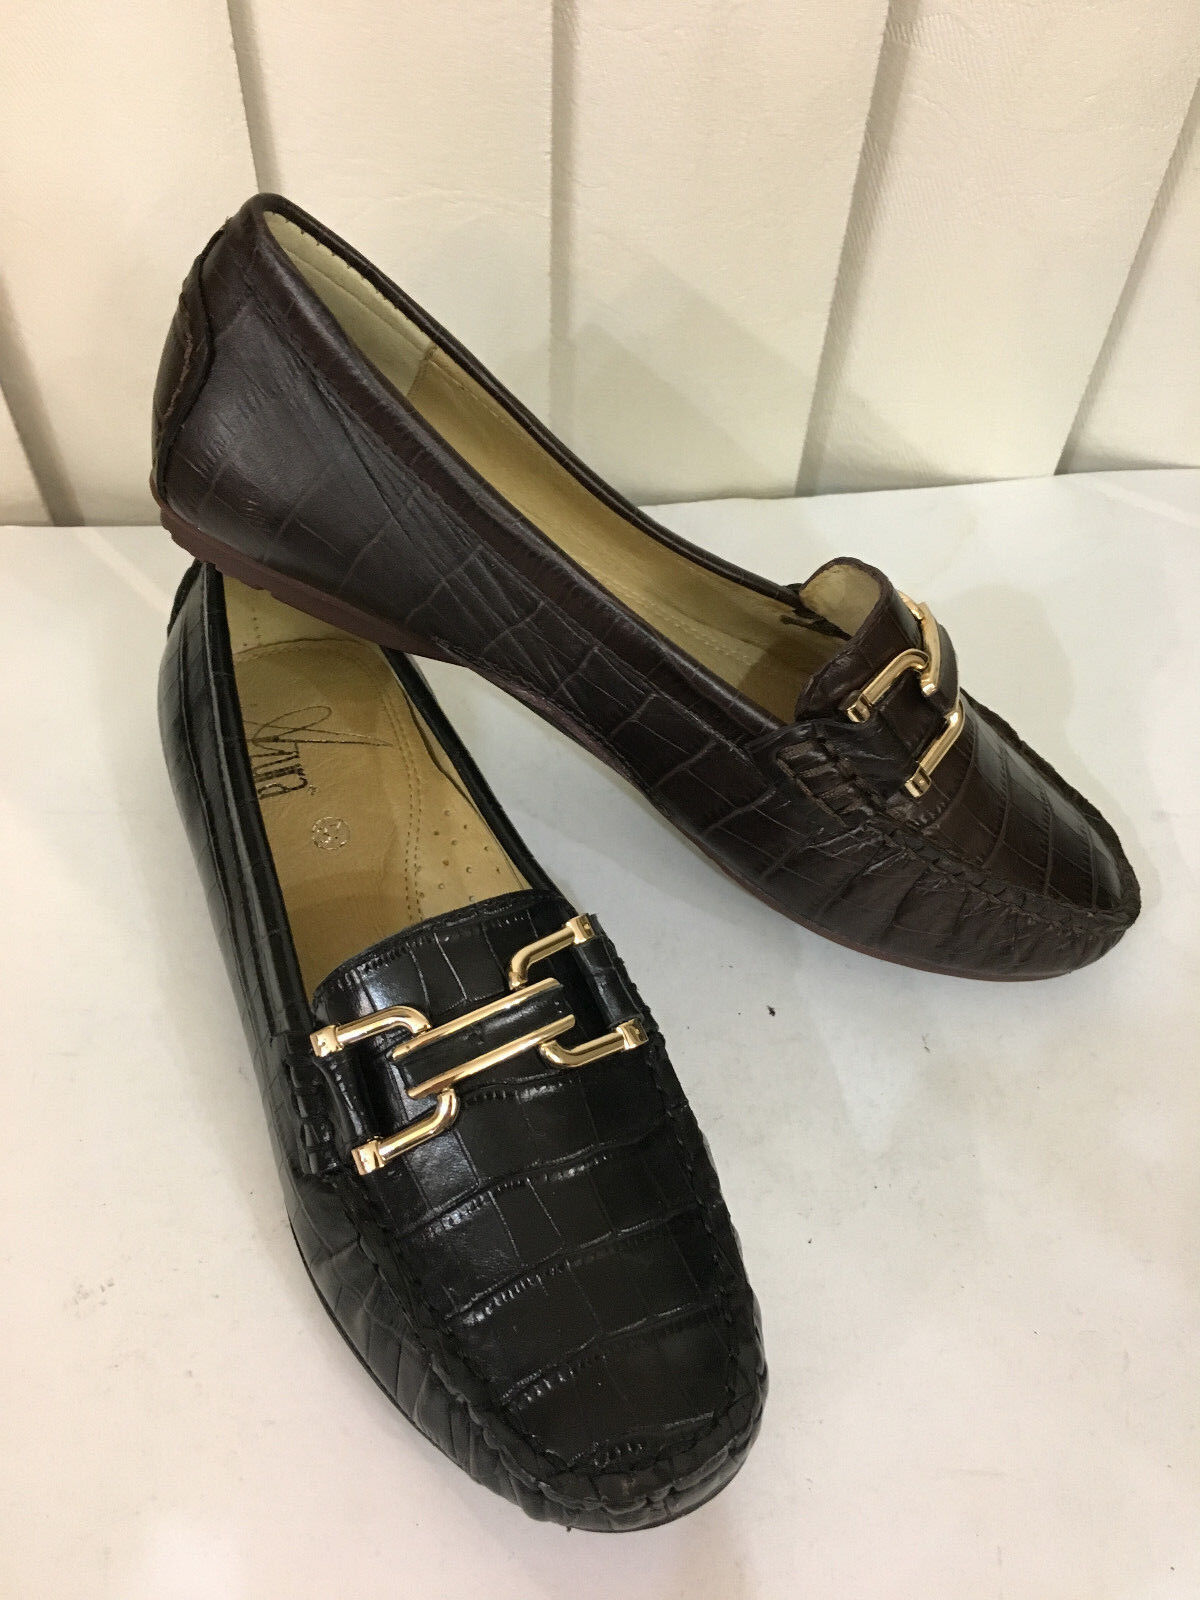 Azura Syrinx Black Brown Leather Cushioned Loafers Moccasins Size 36-41 (5.5-10)